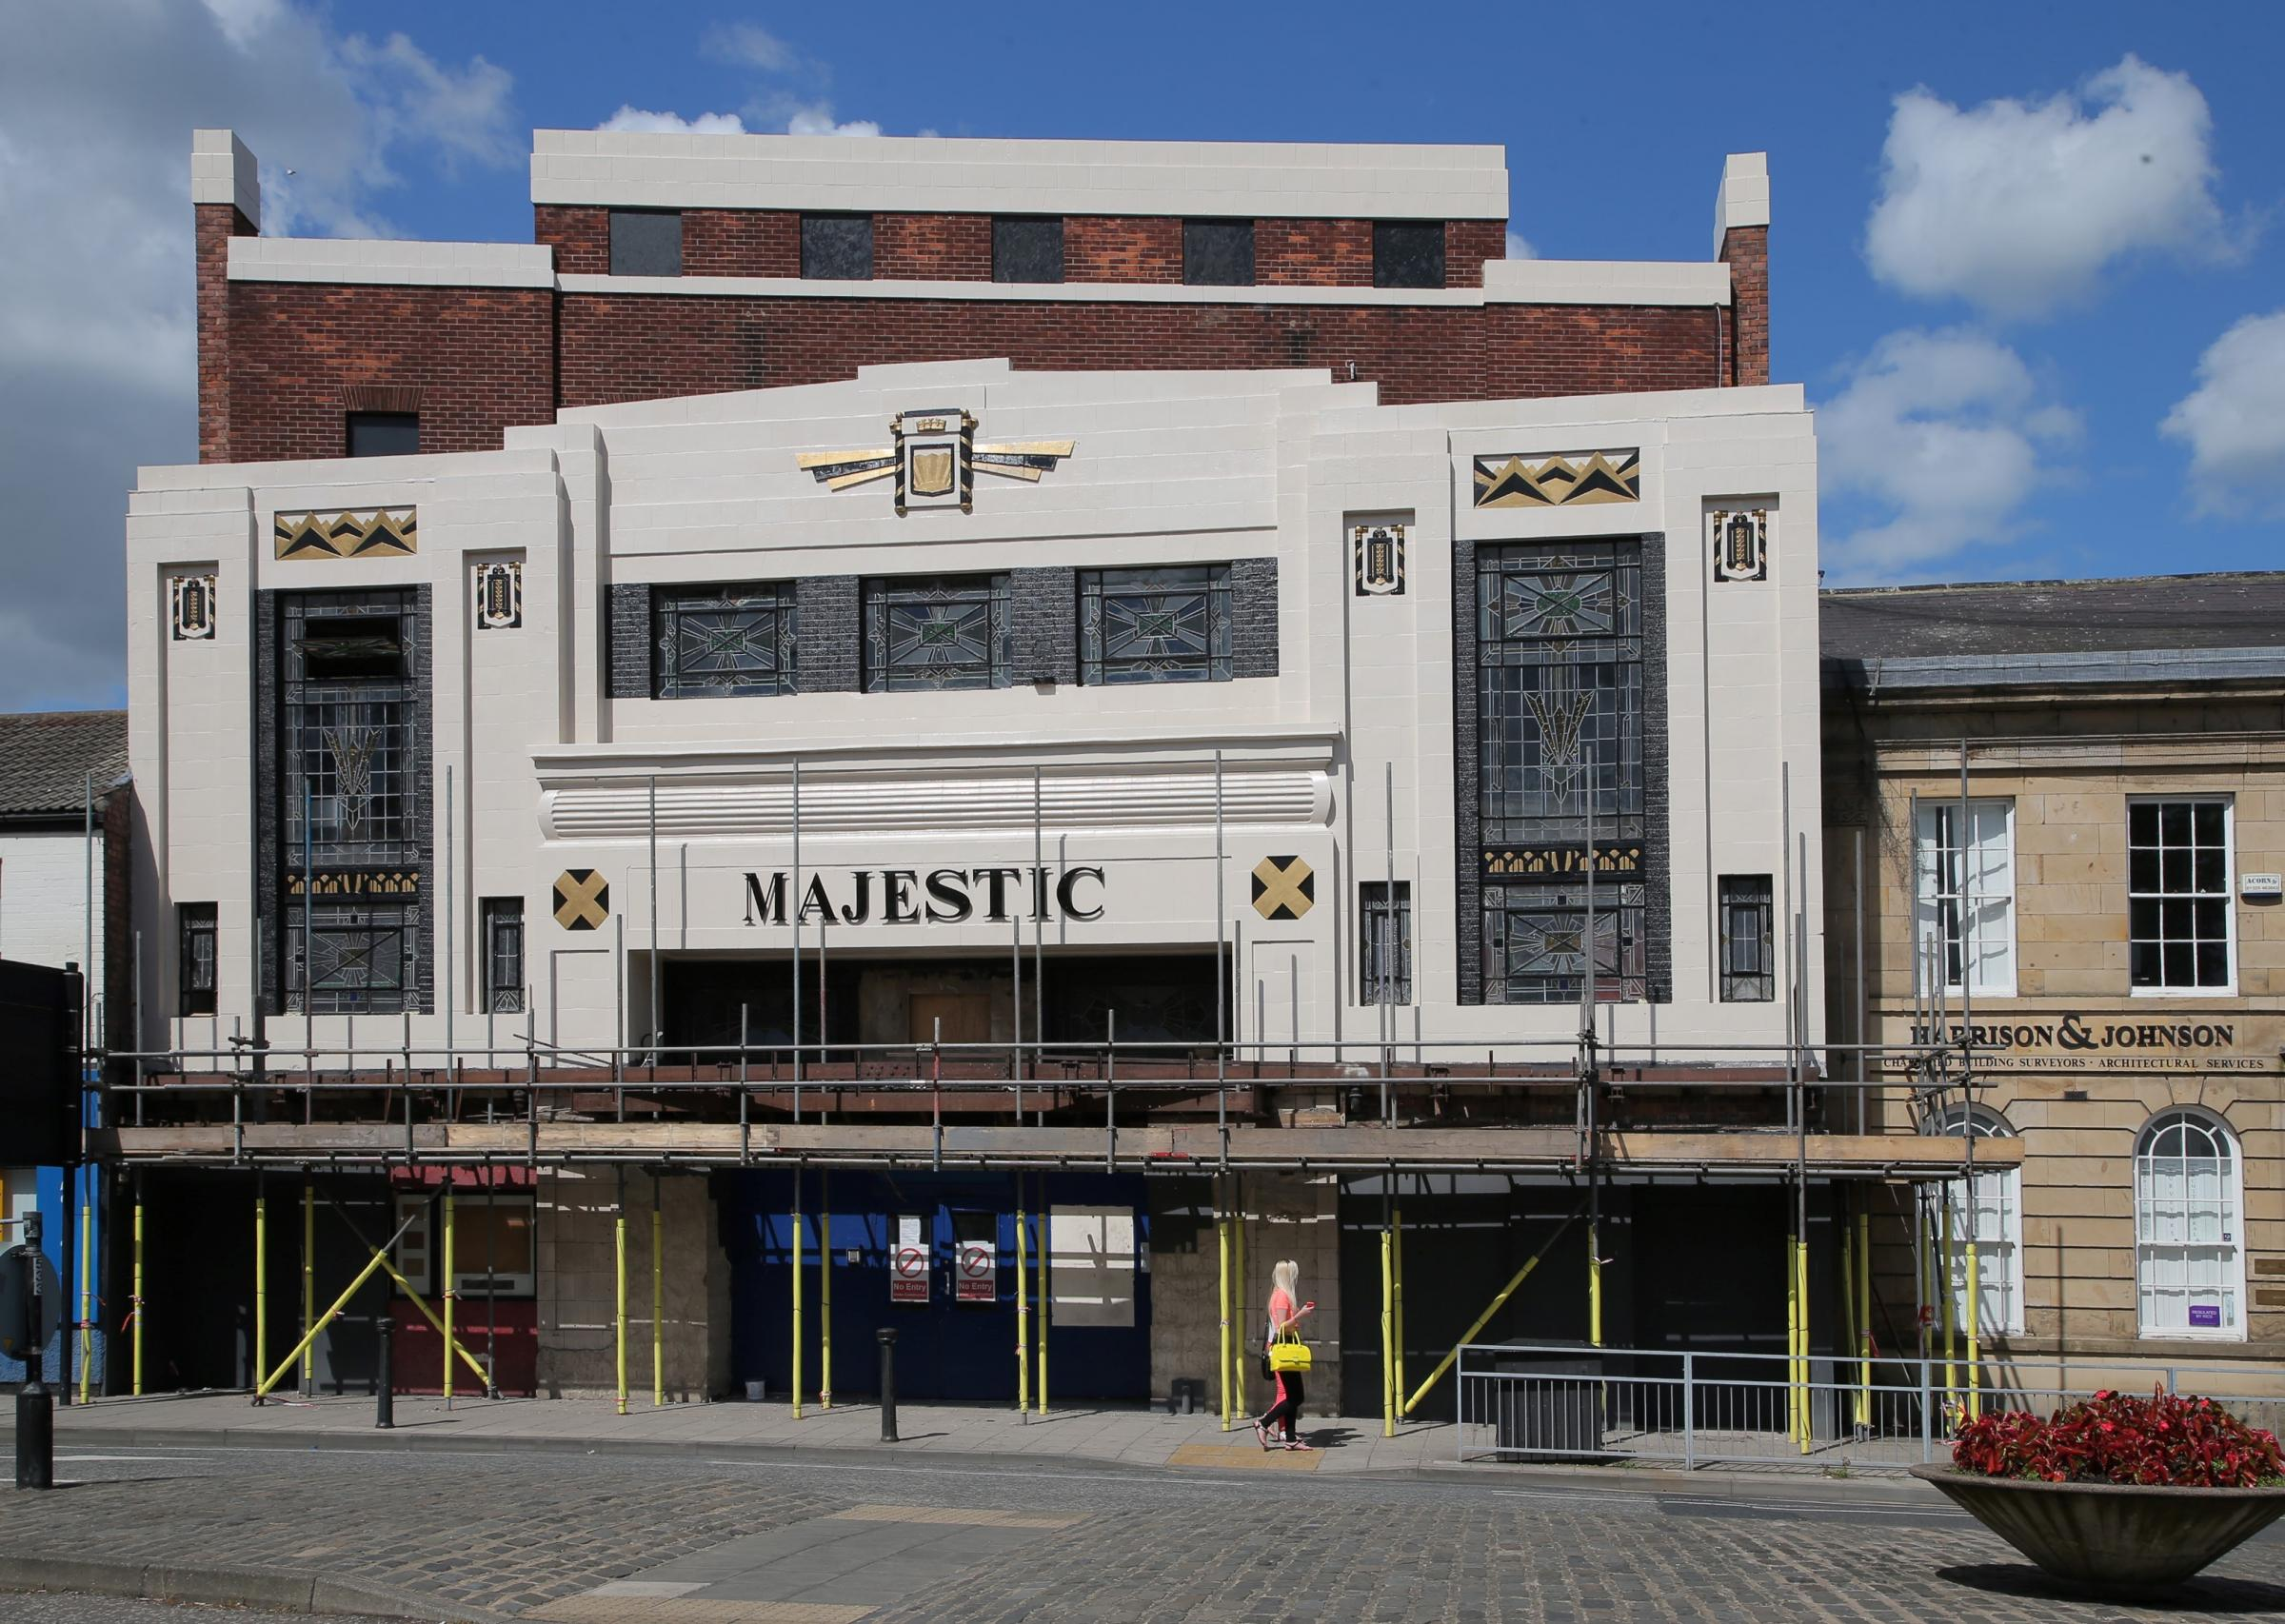 The Majestic in Darlington during its restoration Picture: ANDY LAMB.